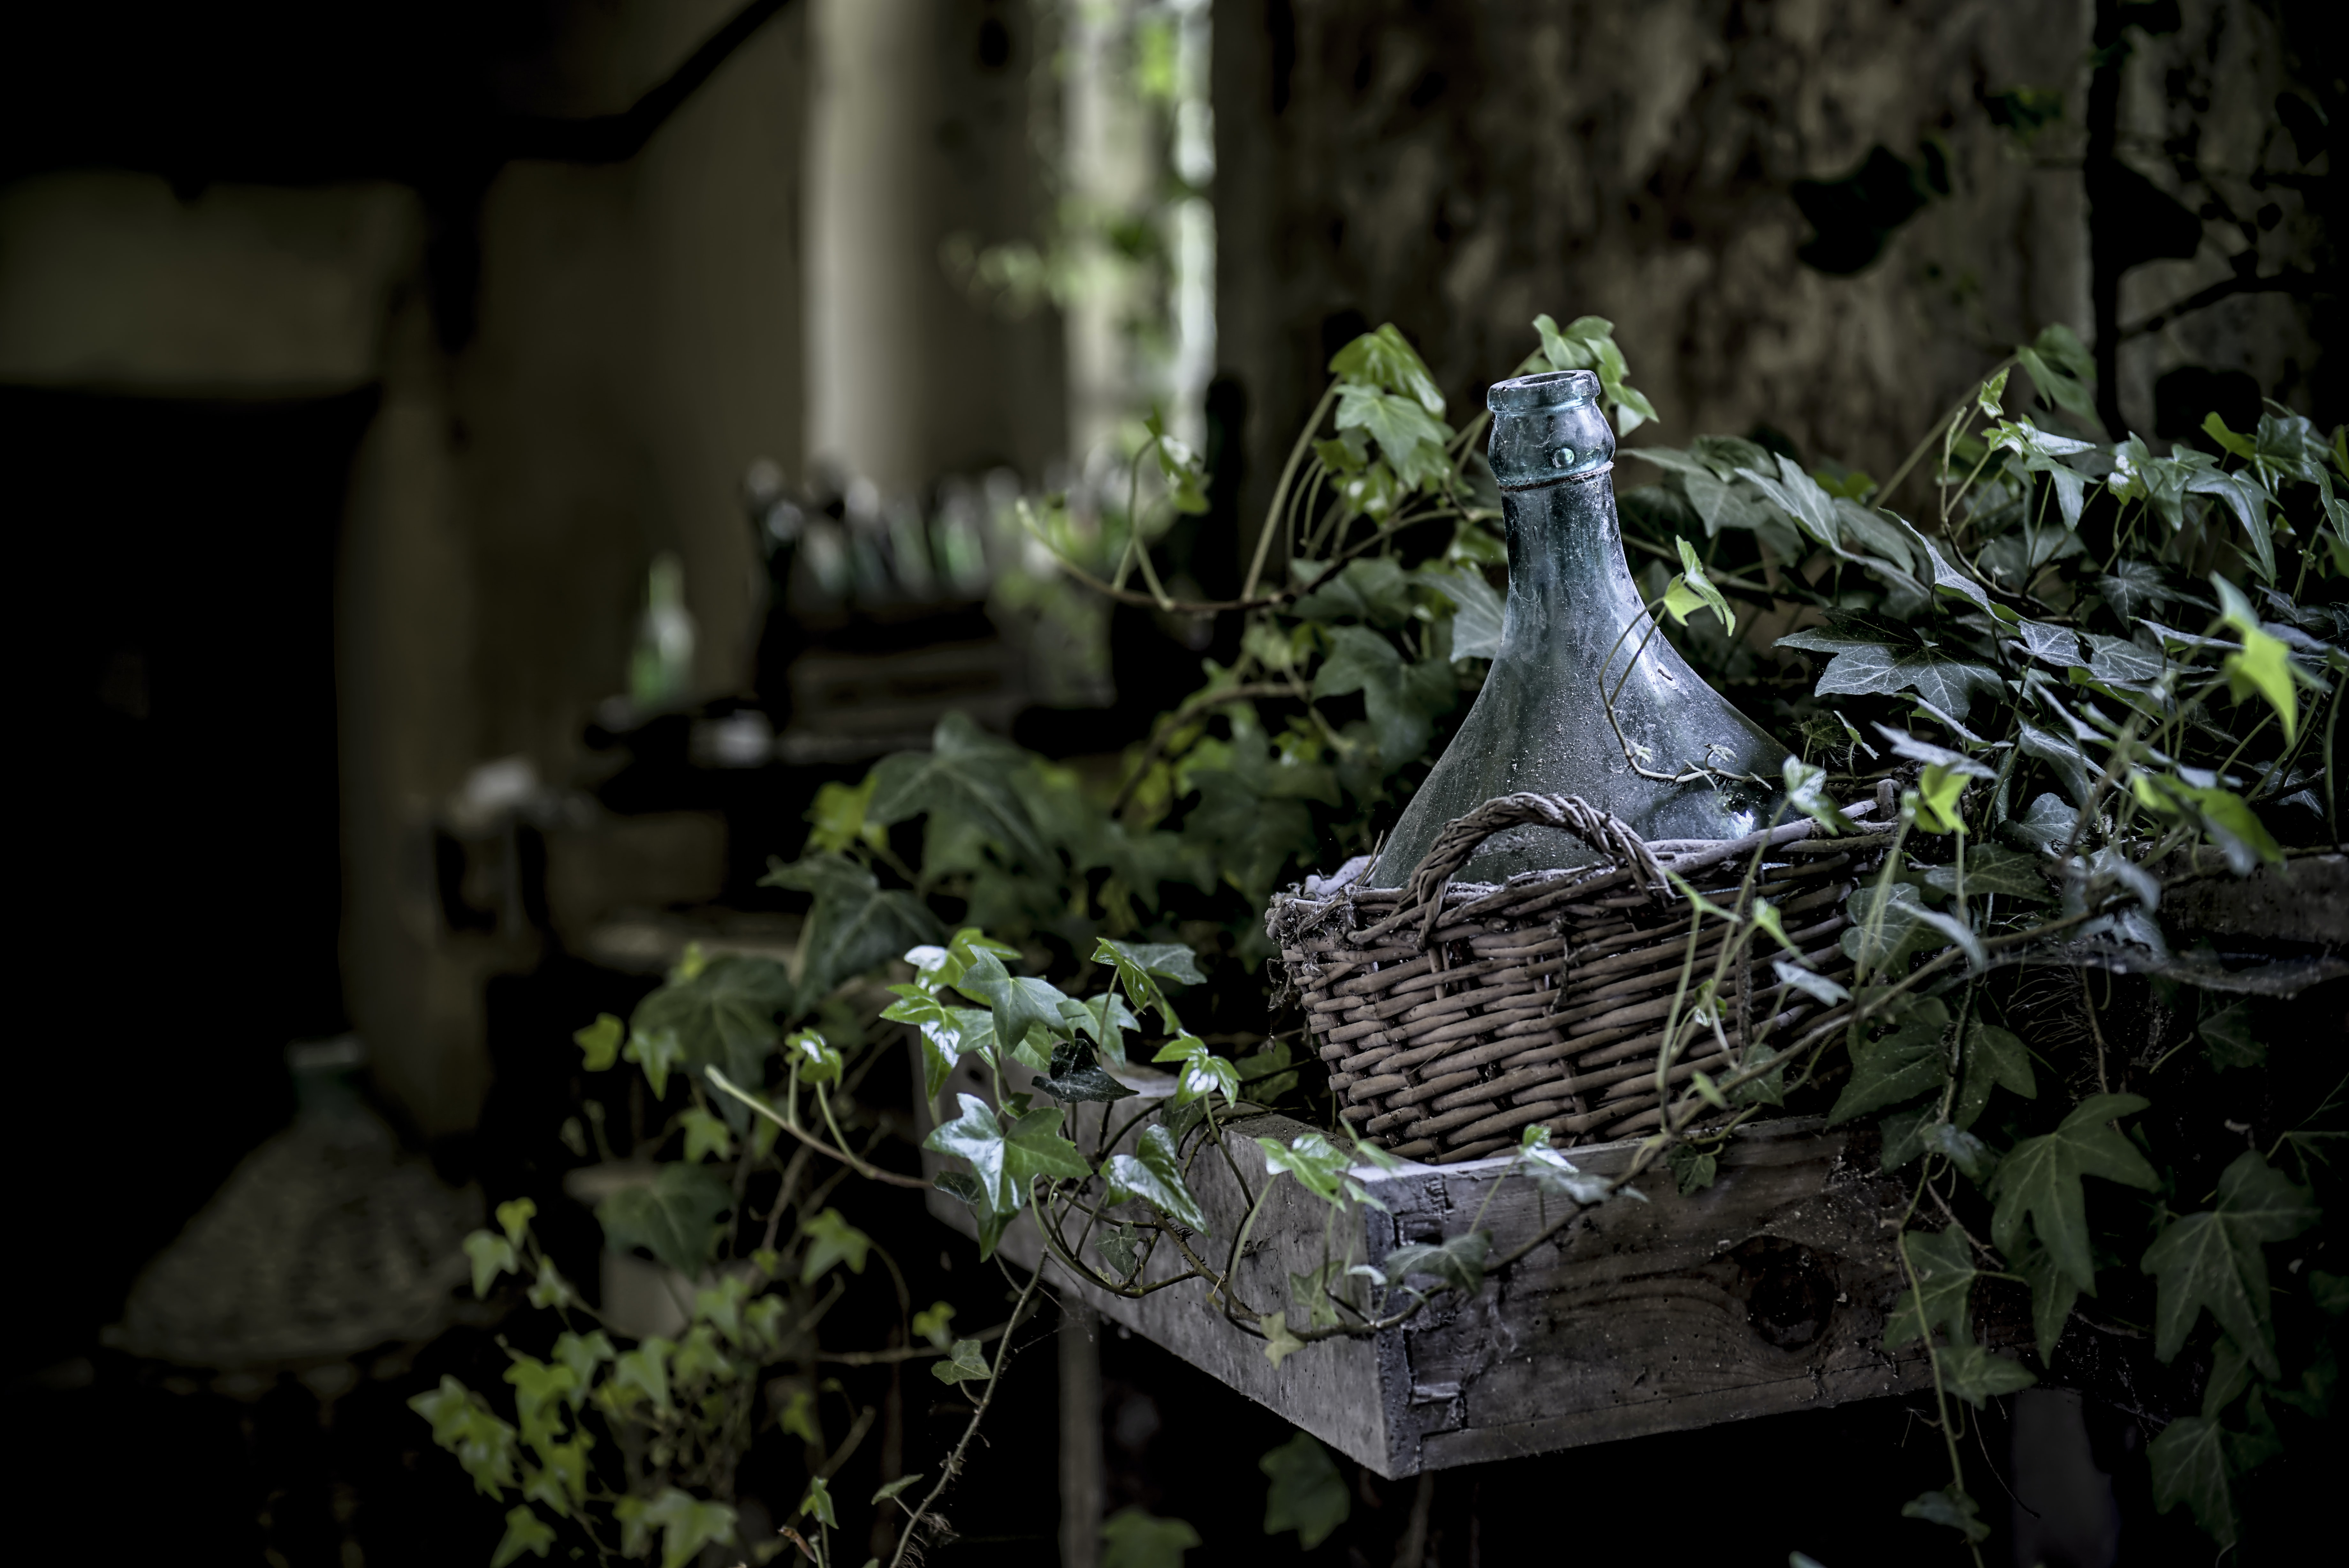 A demijohn surrounded by ivy in a crate hanging from a wall